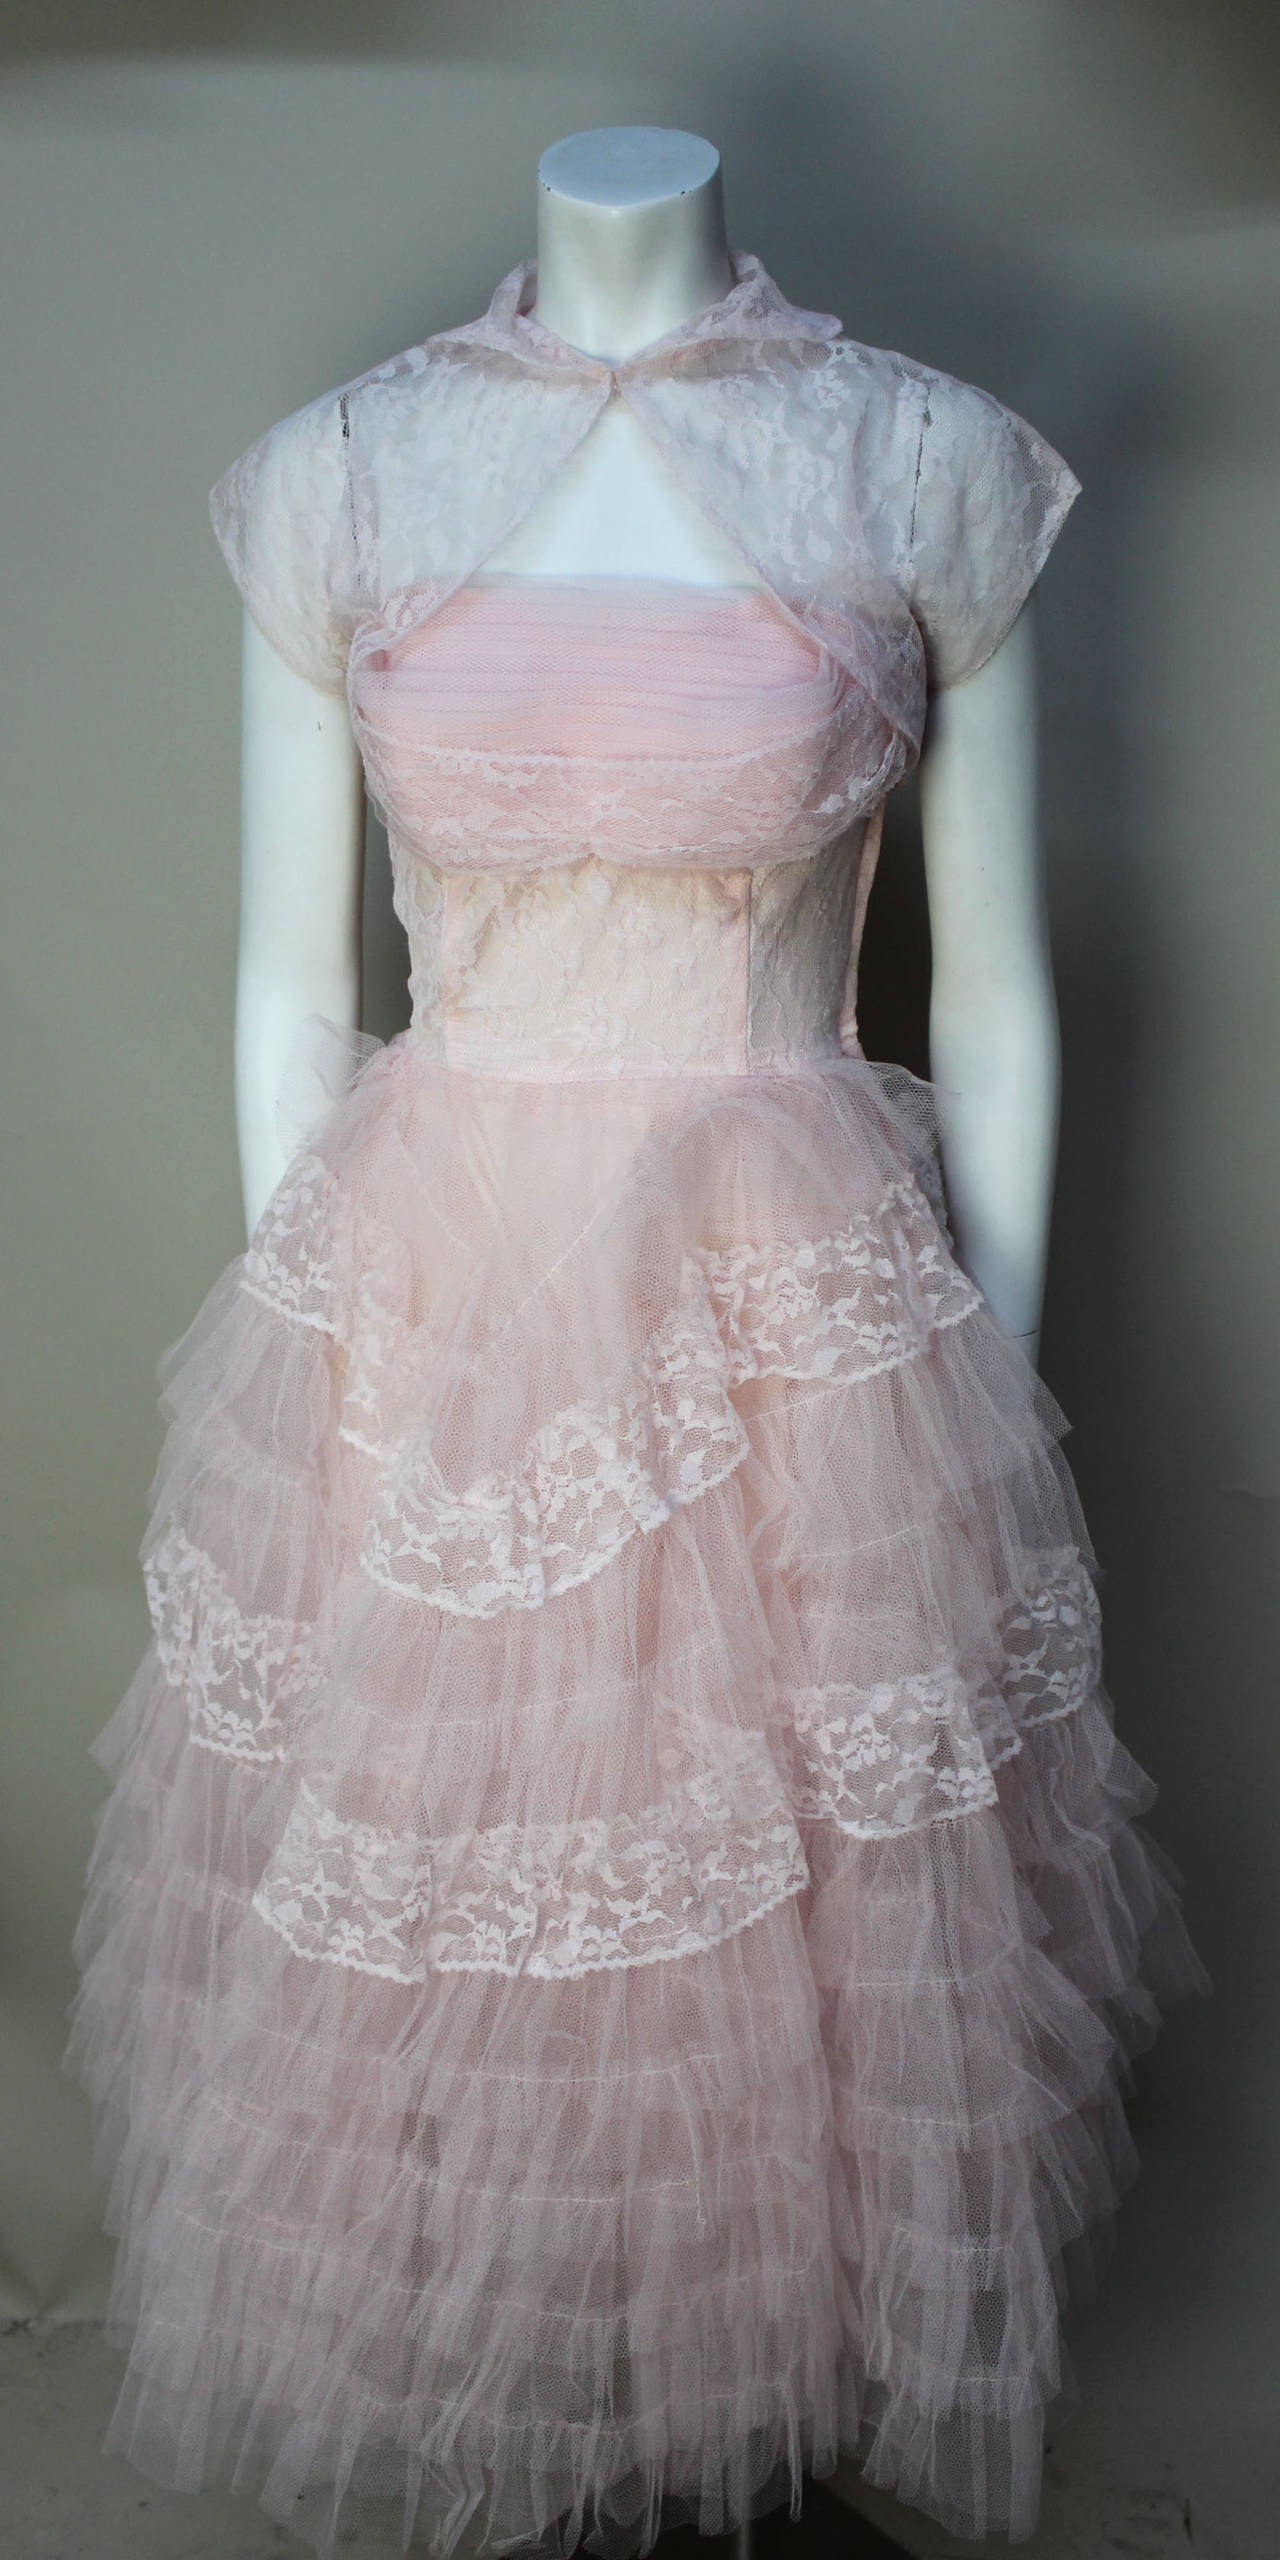 This soft pink tulle confection is a 1950's gem of a dress. An intricate bodice of pleats and lace tops a three layer bottom of ruffled tulle with a taffeta underslip. The matching lace bolero is classic 50's style. This dress is quintessential